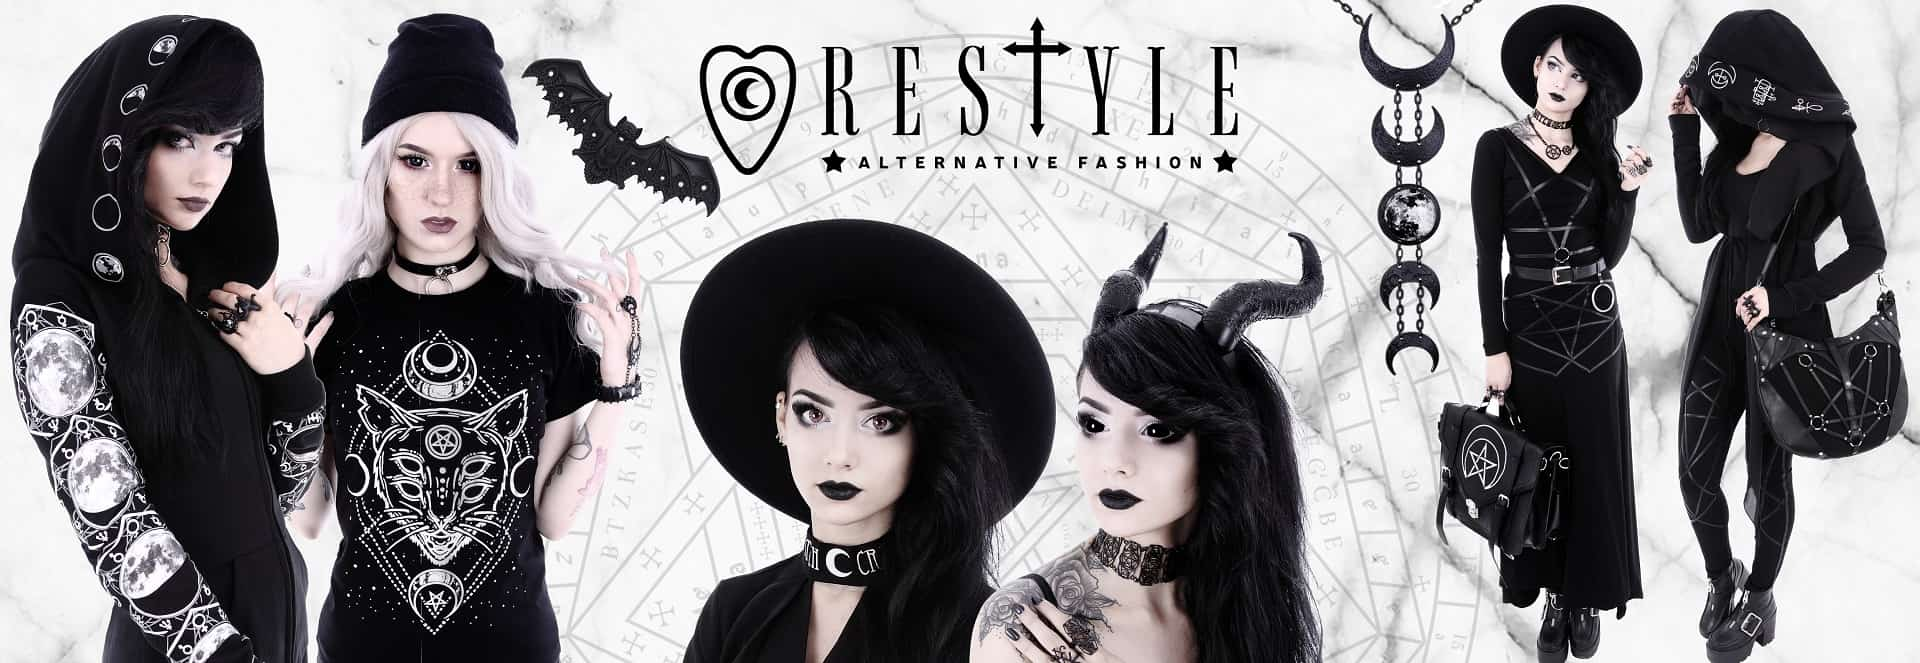 RESTYLE - gothic and alternative fashion in metalRoute!